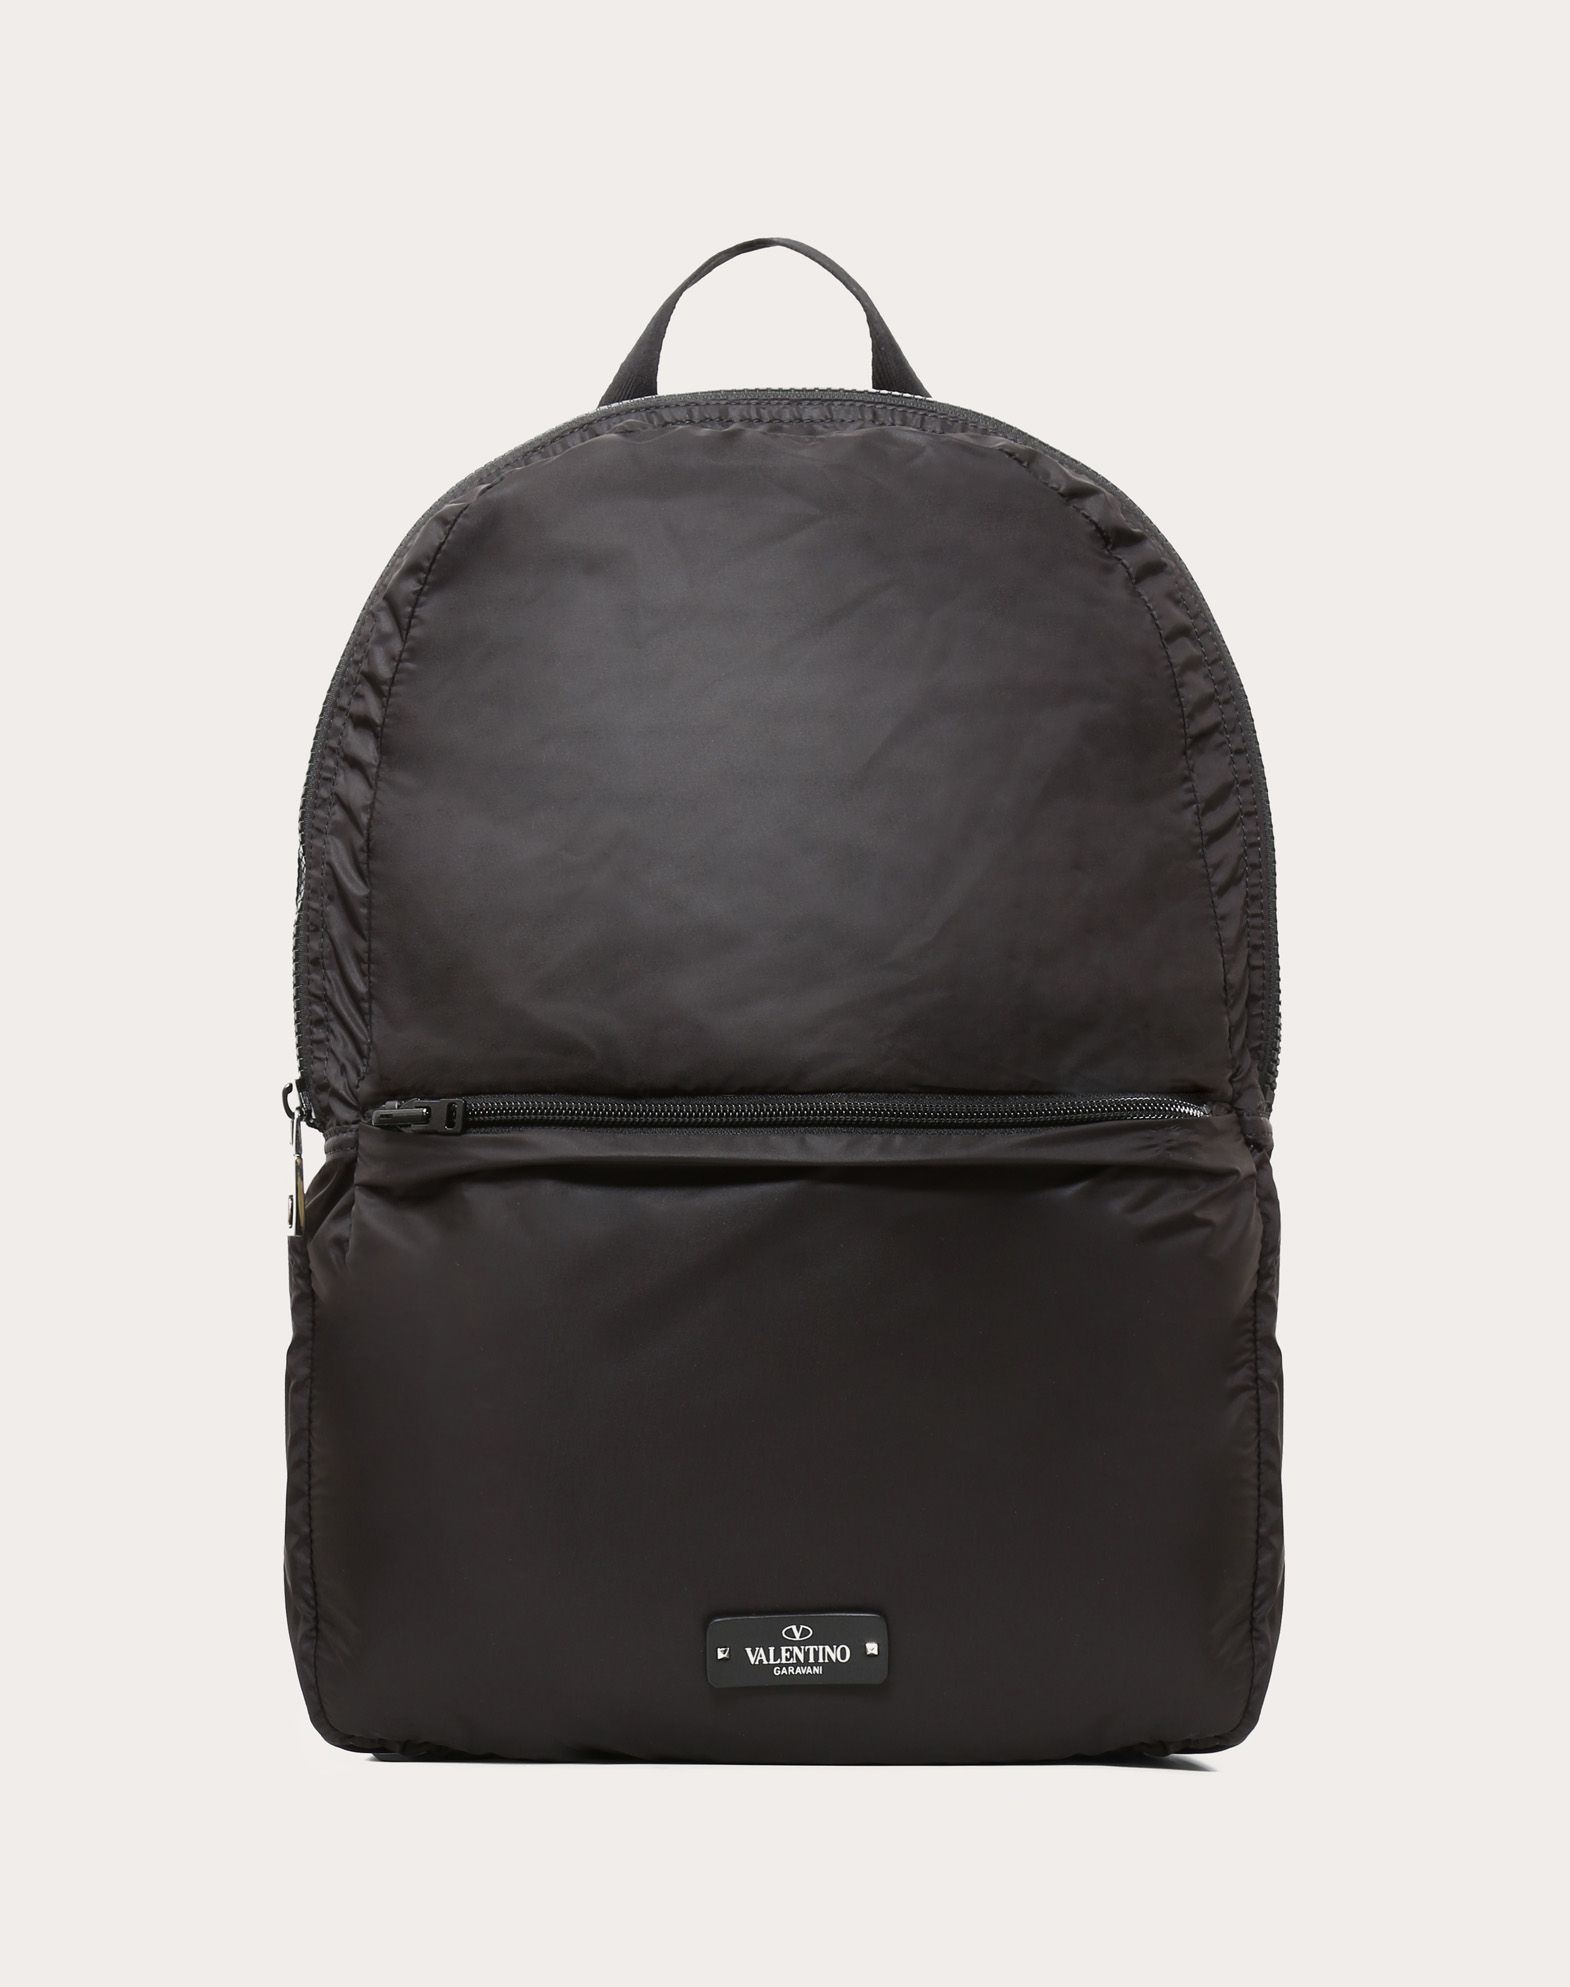 VALENTINO GARAVANI UOMO VLTN backpack Backpack U f